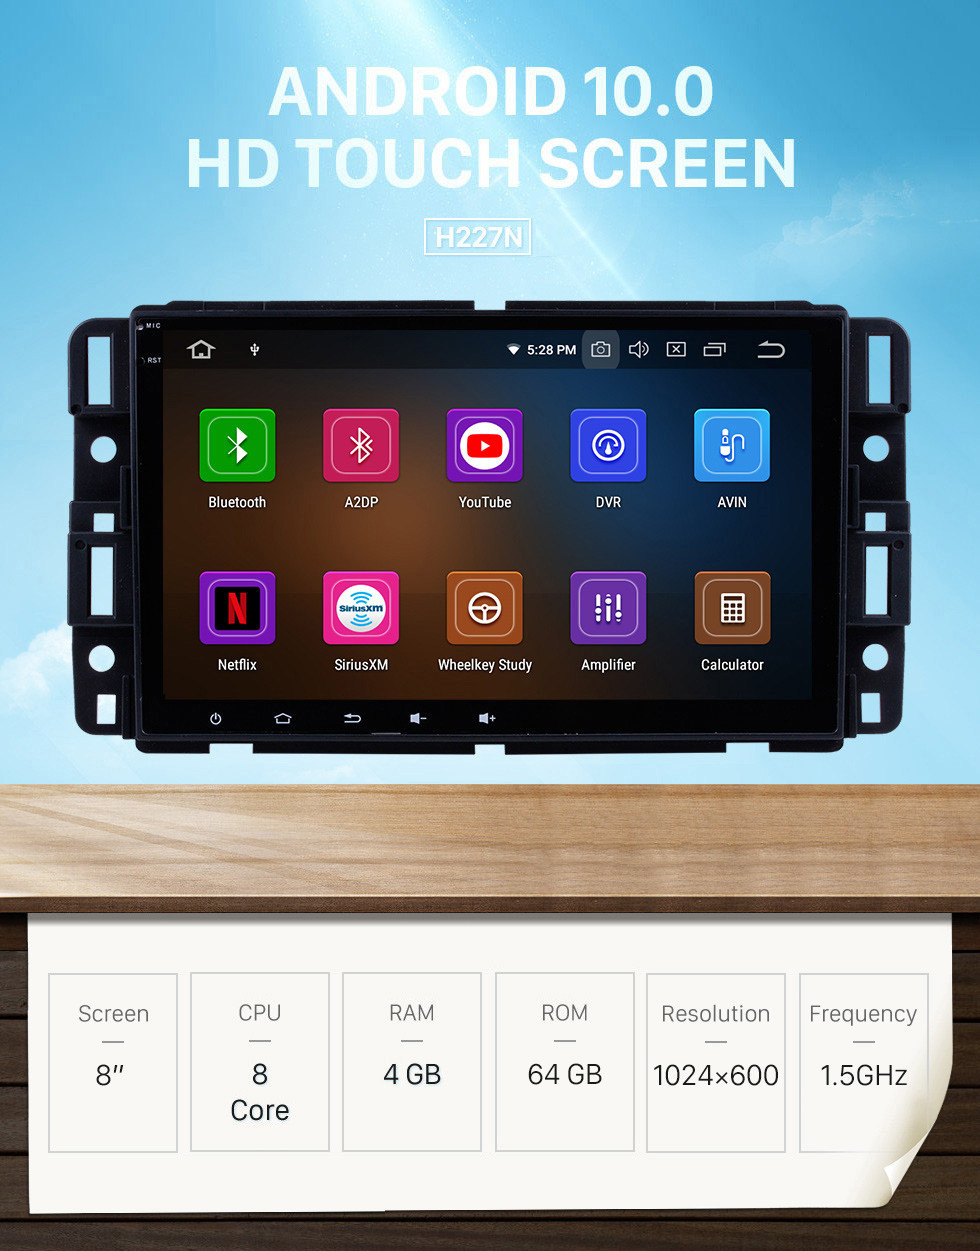 Seicane 8 Inch HD Touchscreen Android 10.0 Aftermarket Radio Head Unit For 2007 2008 2009 2010 2011 Chevrolet Chevy Silverado Car Stereo GPS Navigation System Bluetooth Phone WIFI Support OBDII DVR 1080P Video Steering Wheel Control Mirror Link